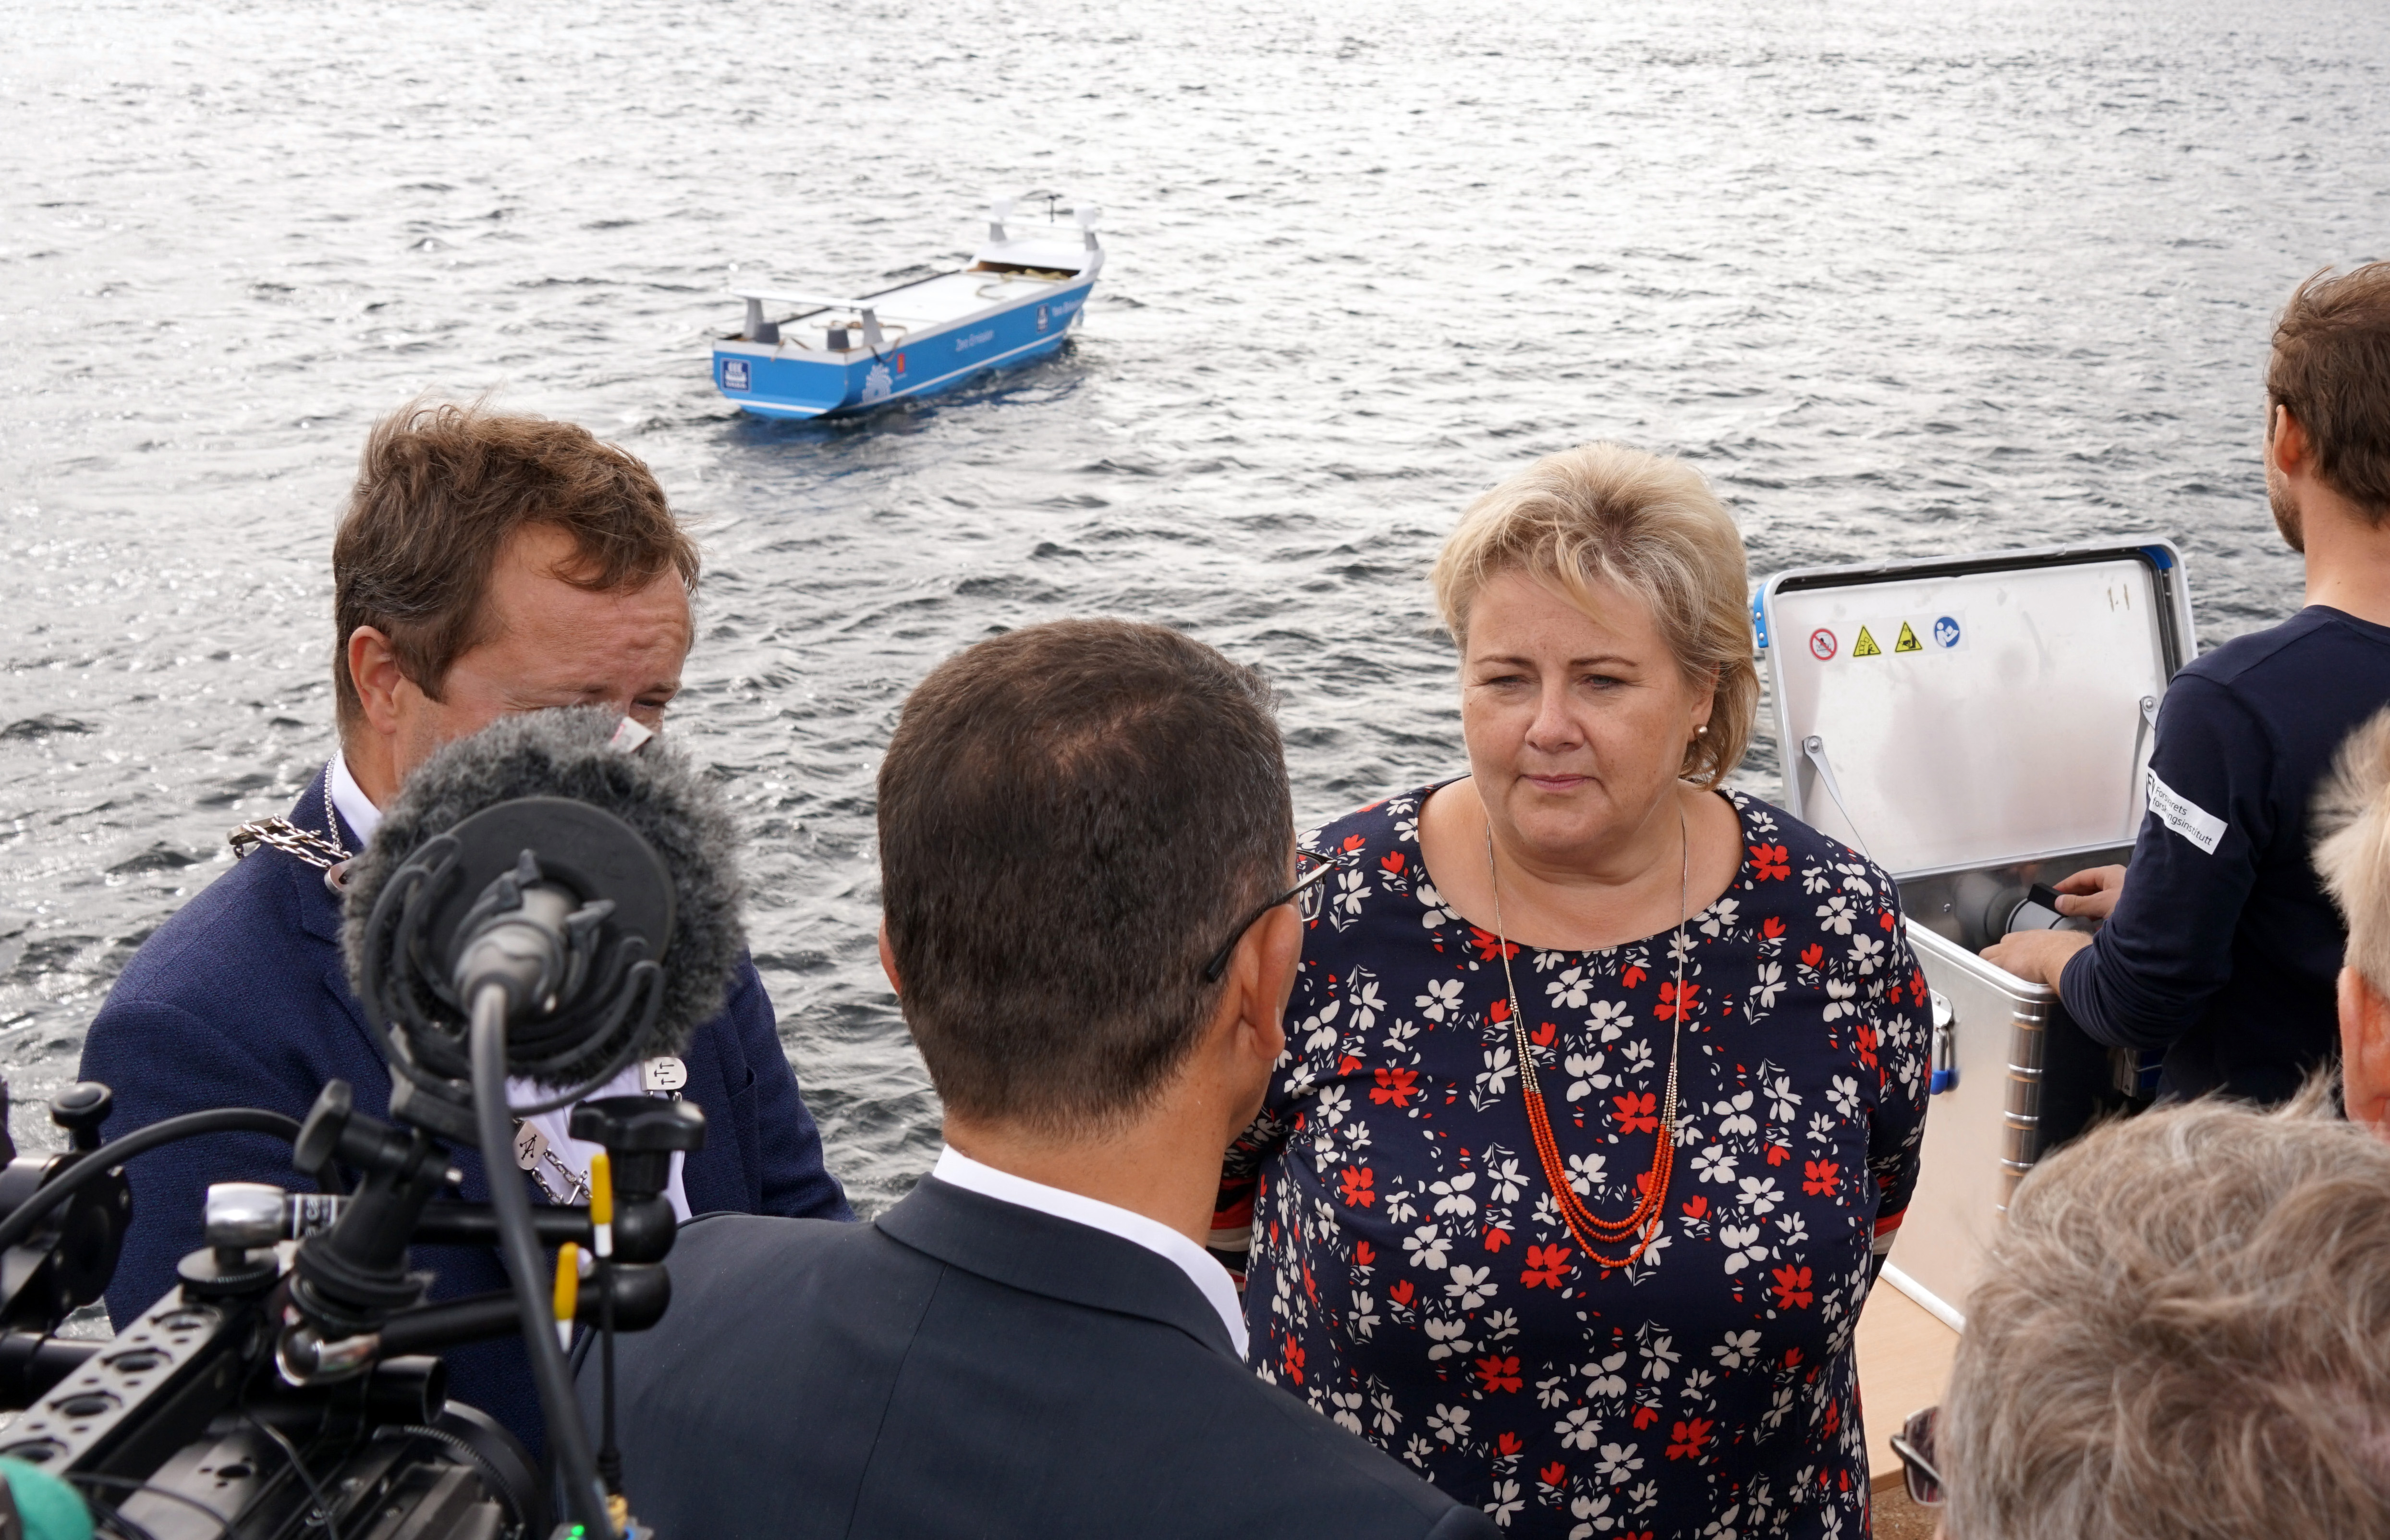 Norwegian prime minister Erna Solberg in front of a miniature version of Yara Birkeland, and several press offisers in front.